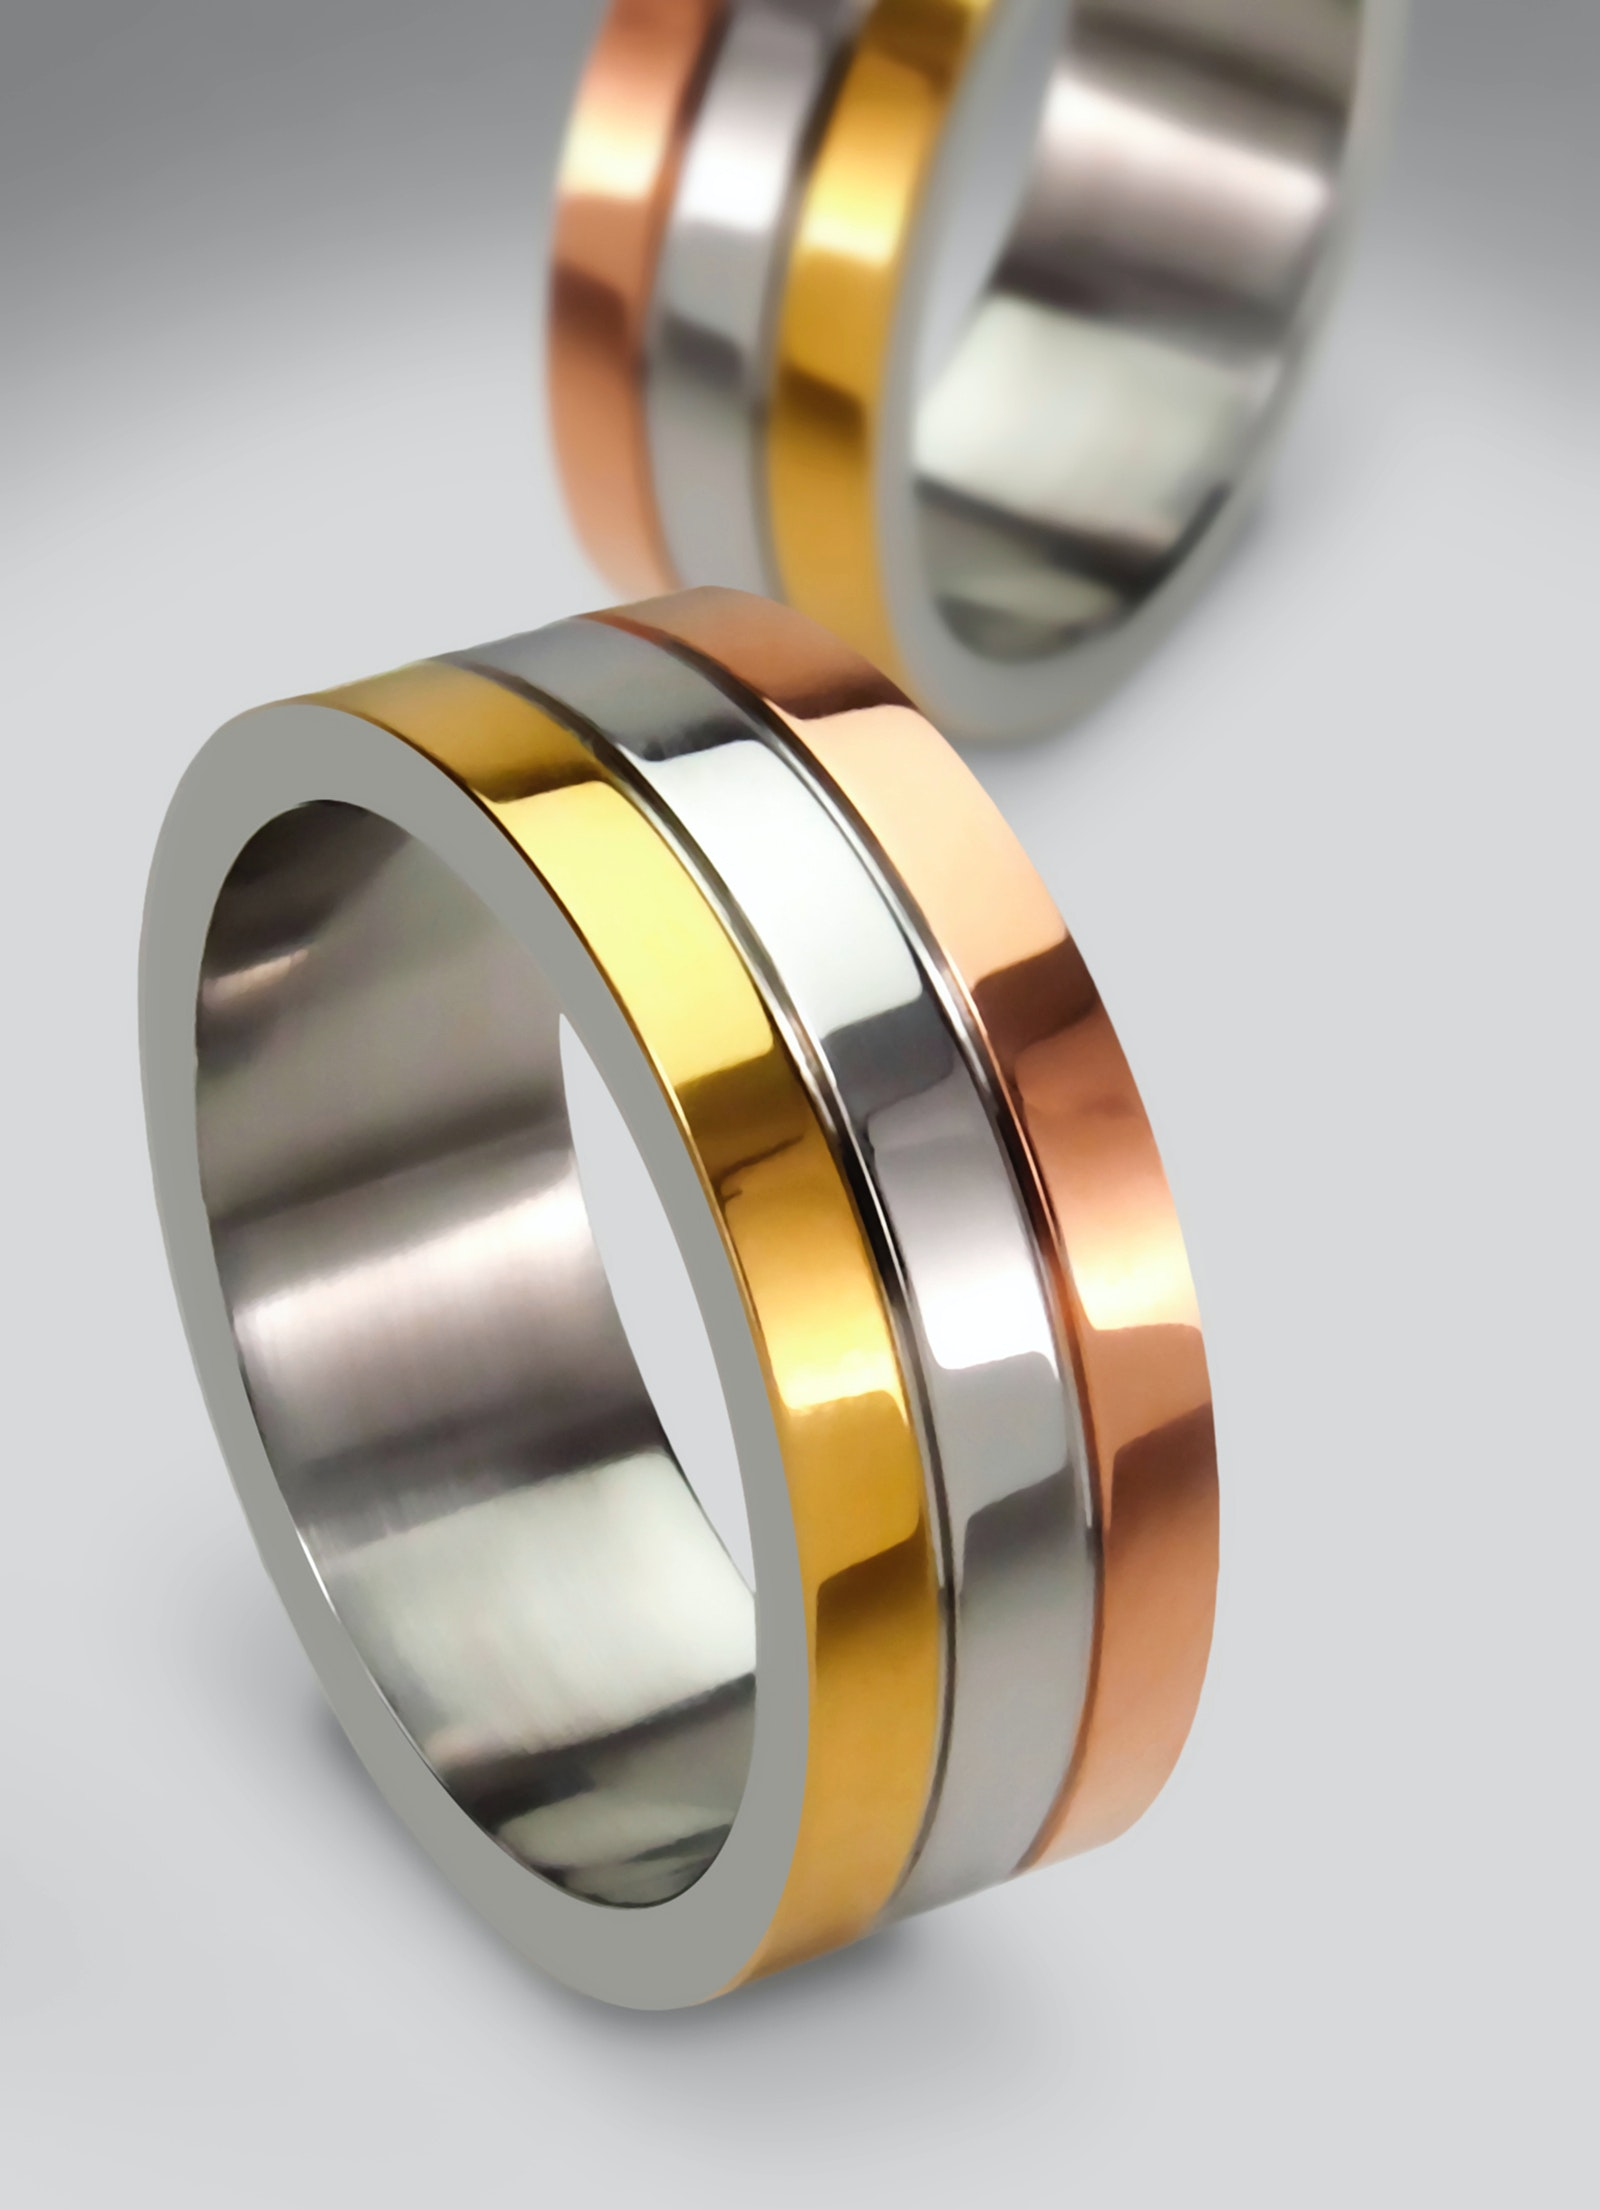 Grayscale Photo of 2 Silver With Diamond Rings · Free ...